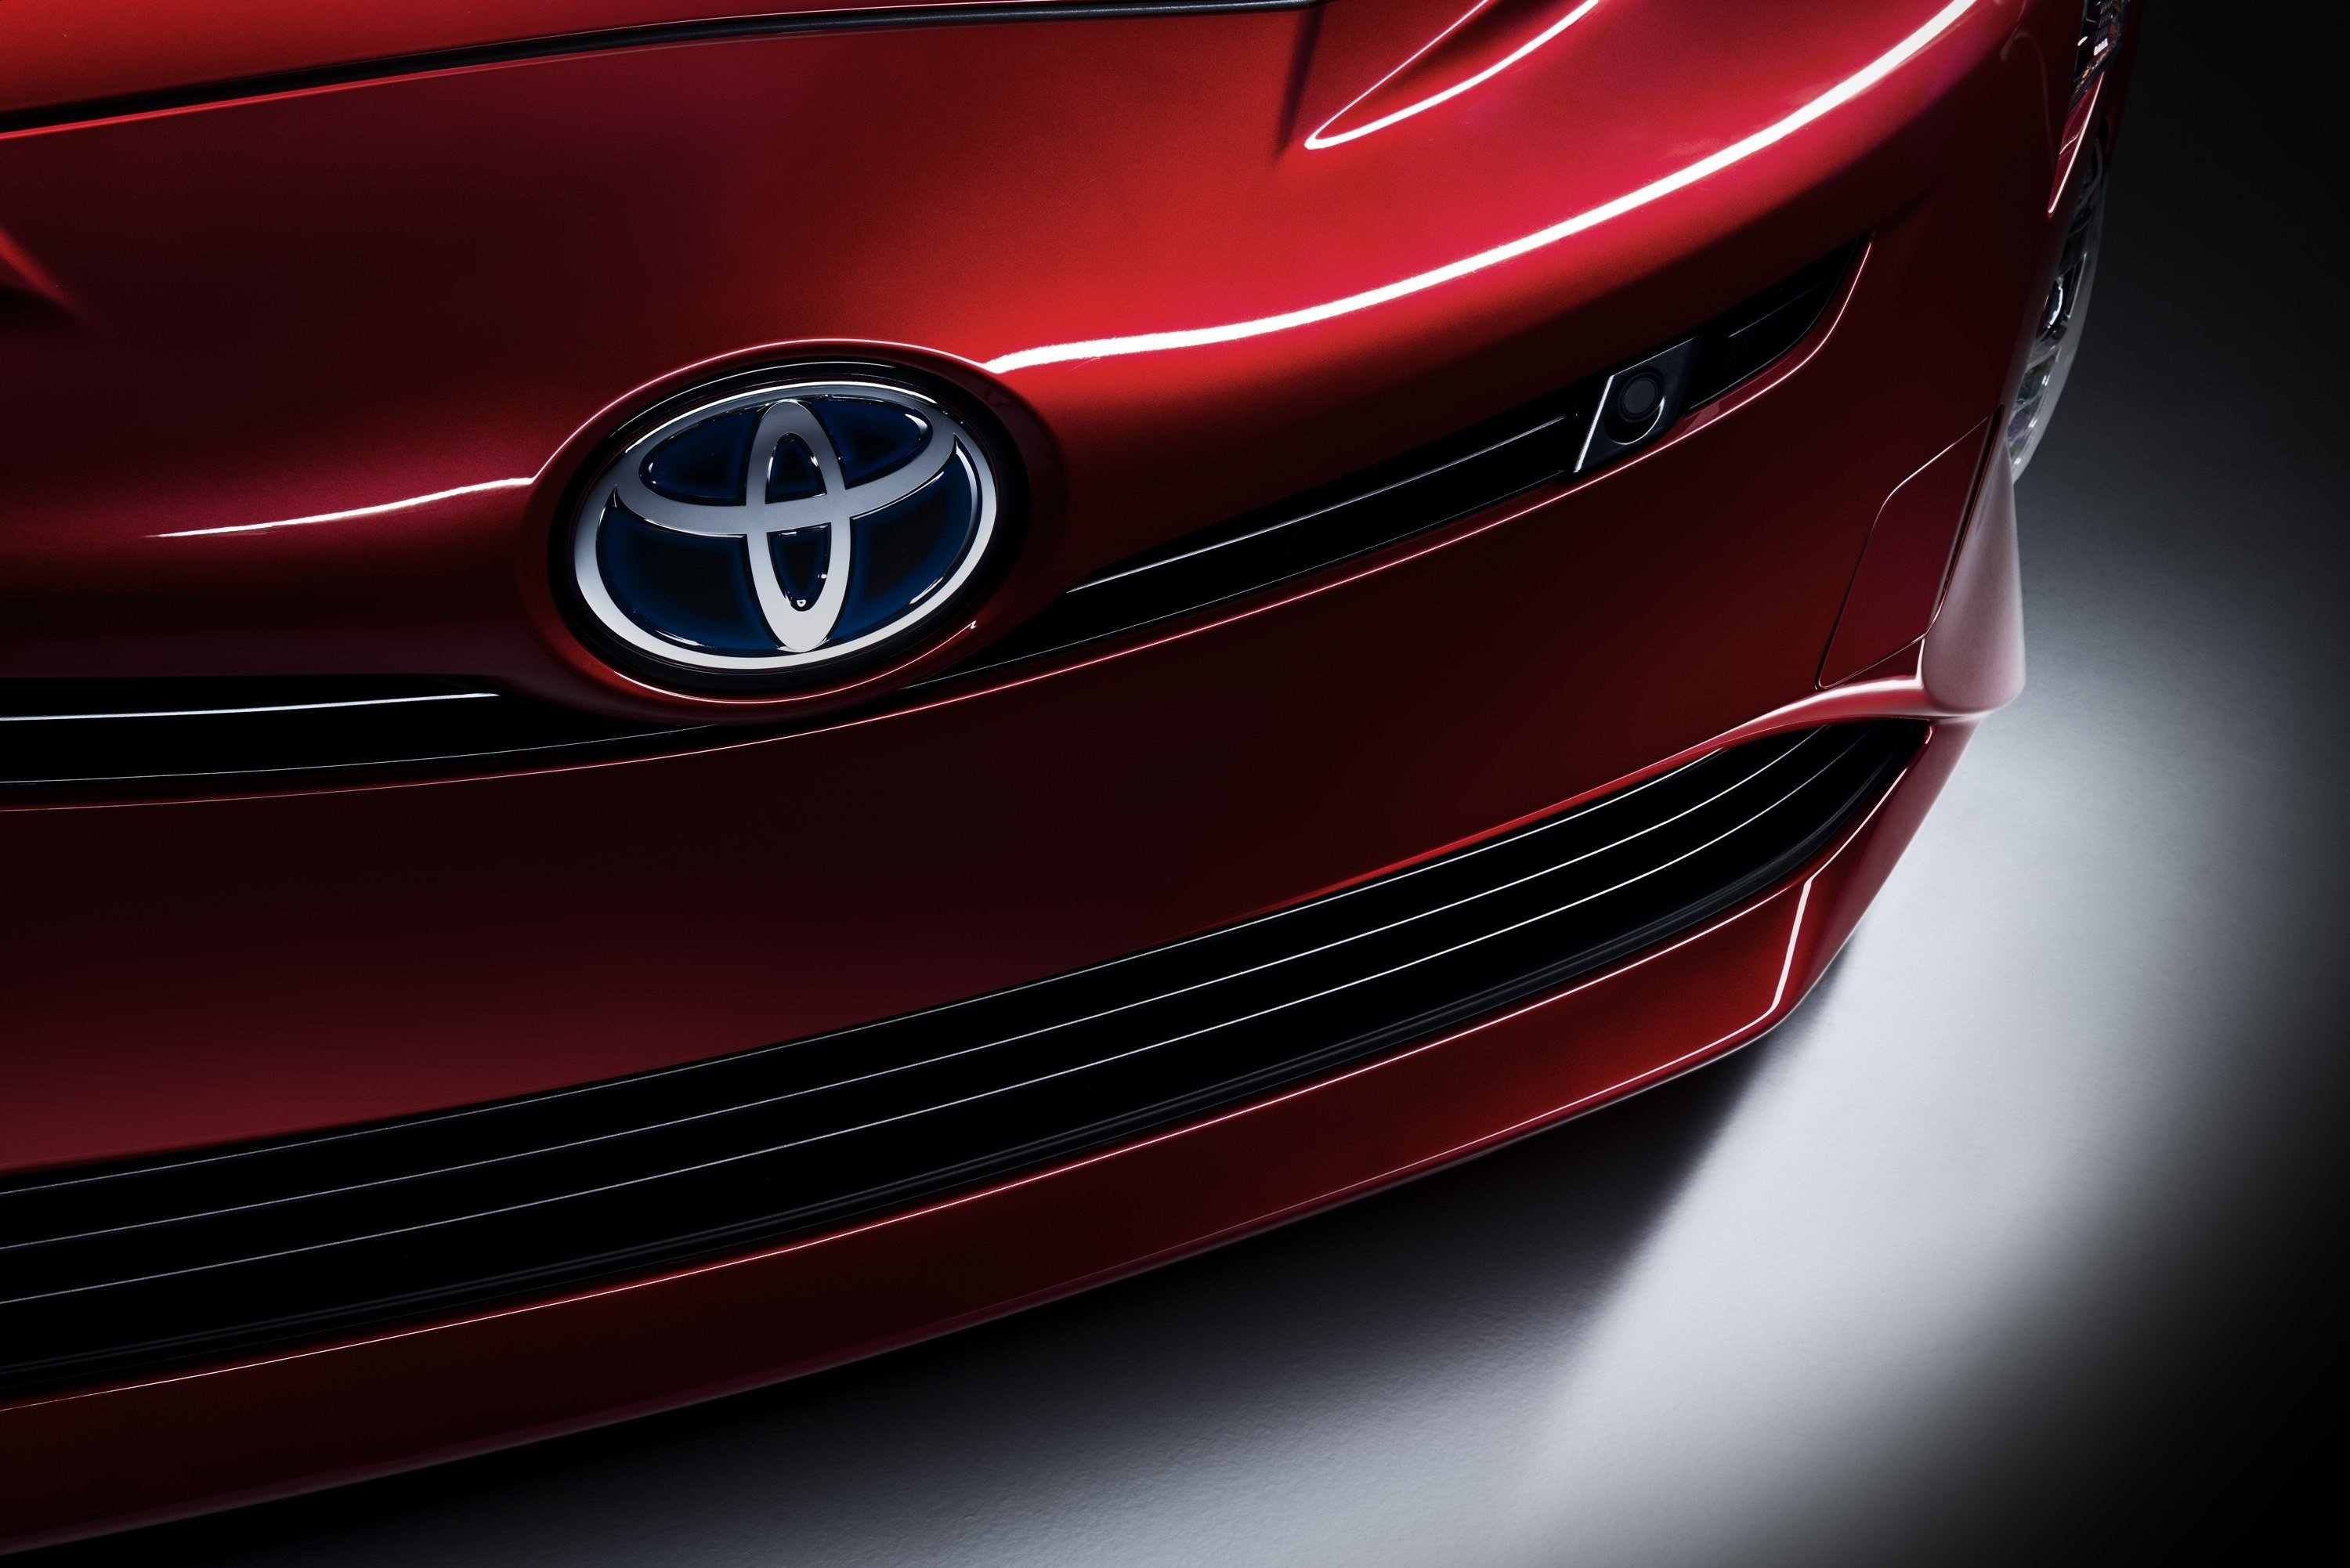 Toyota unveiled an all new Prius that's expected to get about 55 miles per gallon and be